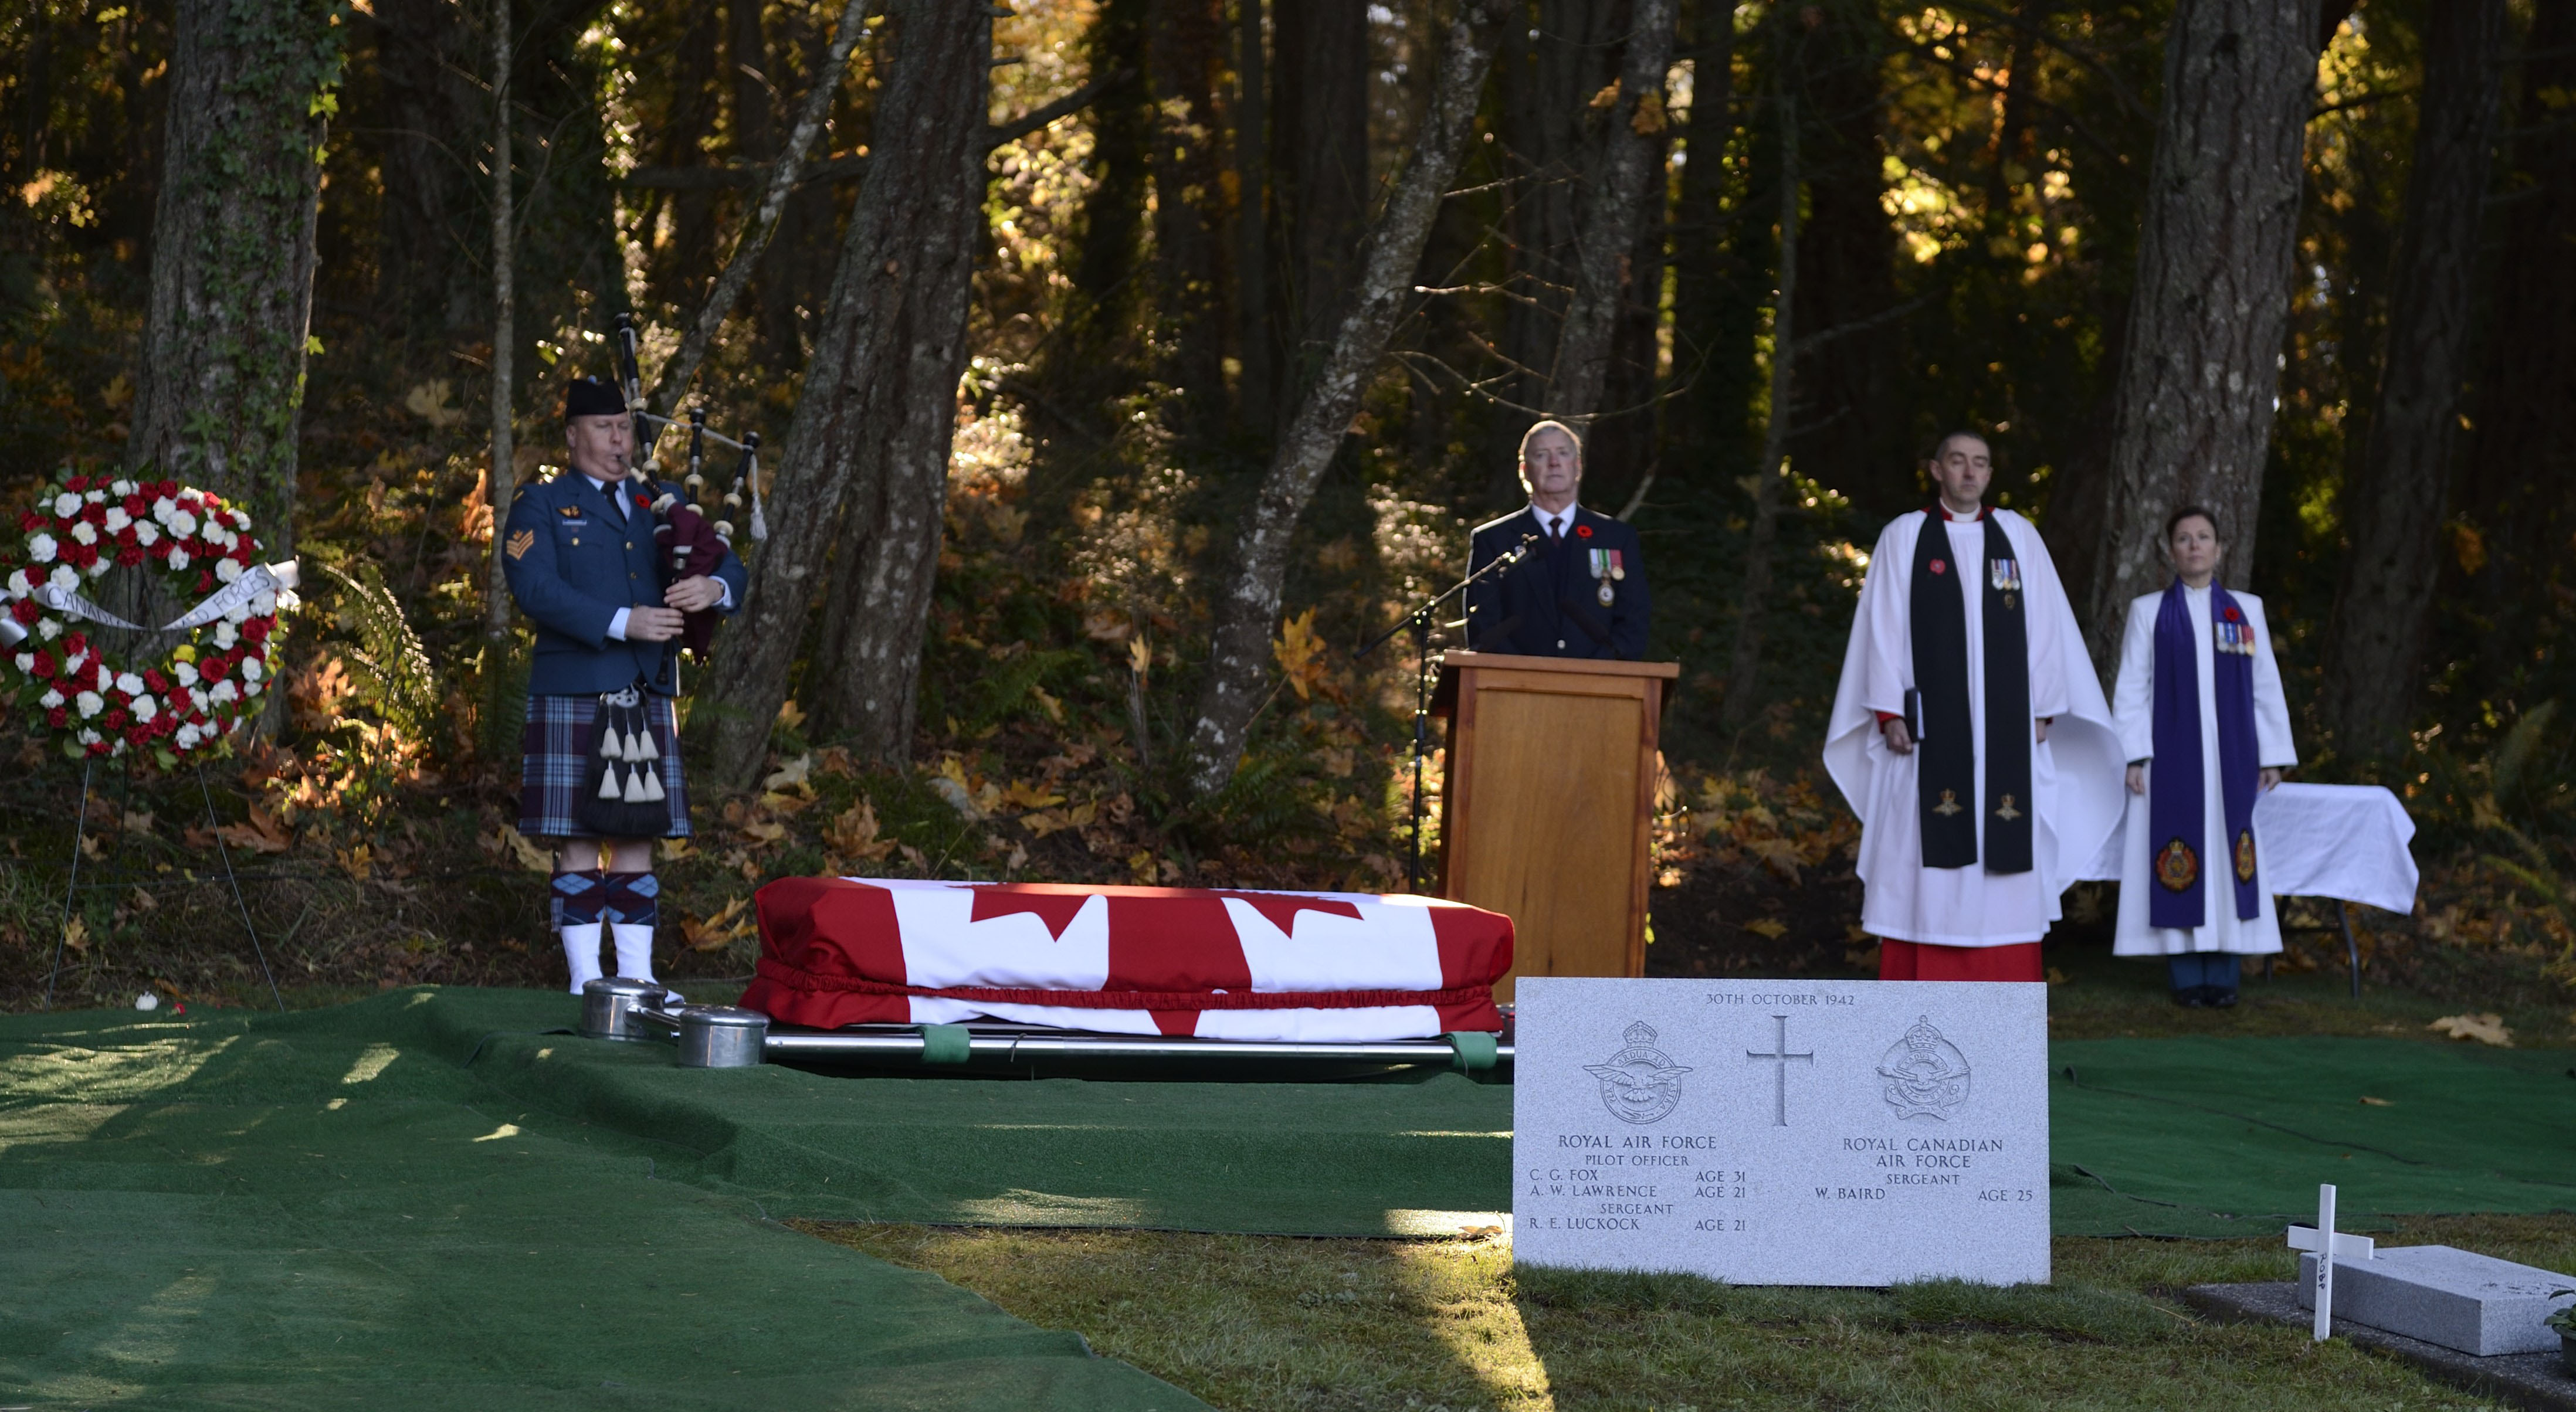 Sunlight illuminates the casket during the November 10, 2014, interment service of Pilot Officer Charles George Fox, Pilot Officer Anthony William Lawrence, and Sergeant Robert Ernest Luckock, of the Royal Air Force (RAF), and Sergeant William Baird, of the Royal Canadian Air Force (RCAF). Captain (Ret) Gary Brown, from the Victoria Branch of the Vancouver Island Aircrew Association (centre, at lectern), RAF Reverend (Group Captain) Nick Barry, and Major Angela James, an RCAF chaplain, listen as RCAF piper Sergeant Alan Buchanan plays the Lament at Royal Oak Burial Park in Victoria, British Columbia. PHOTO: Corporal Malcolm Byers